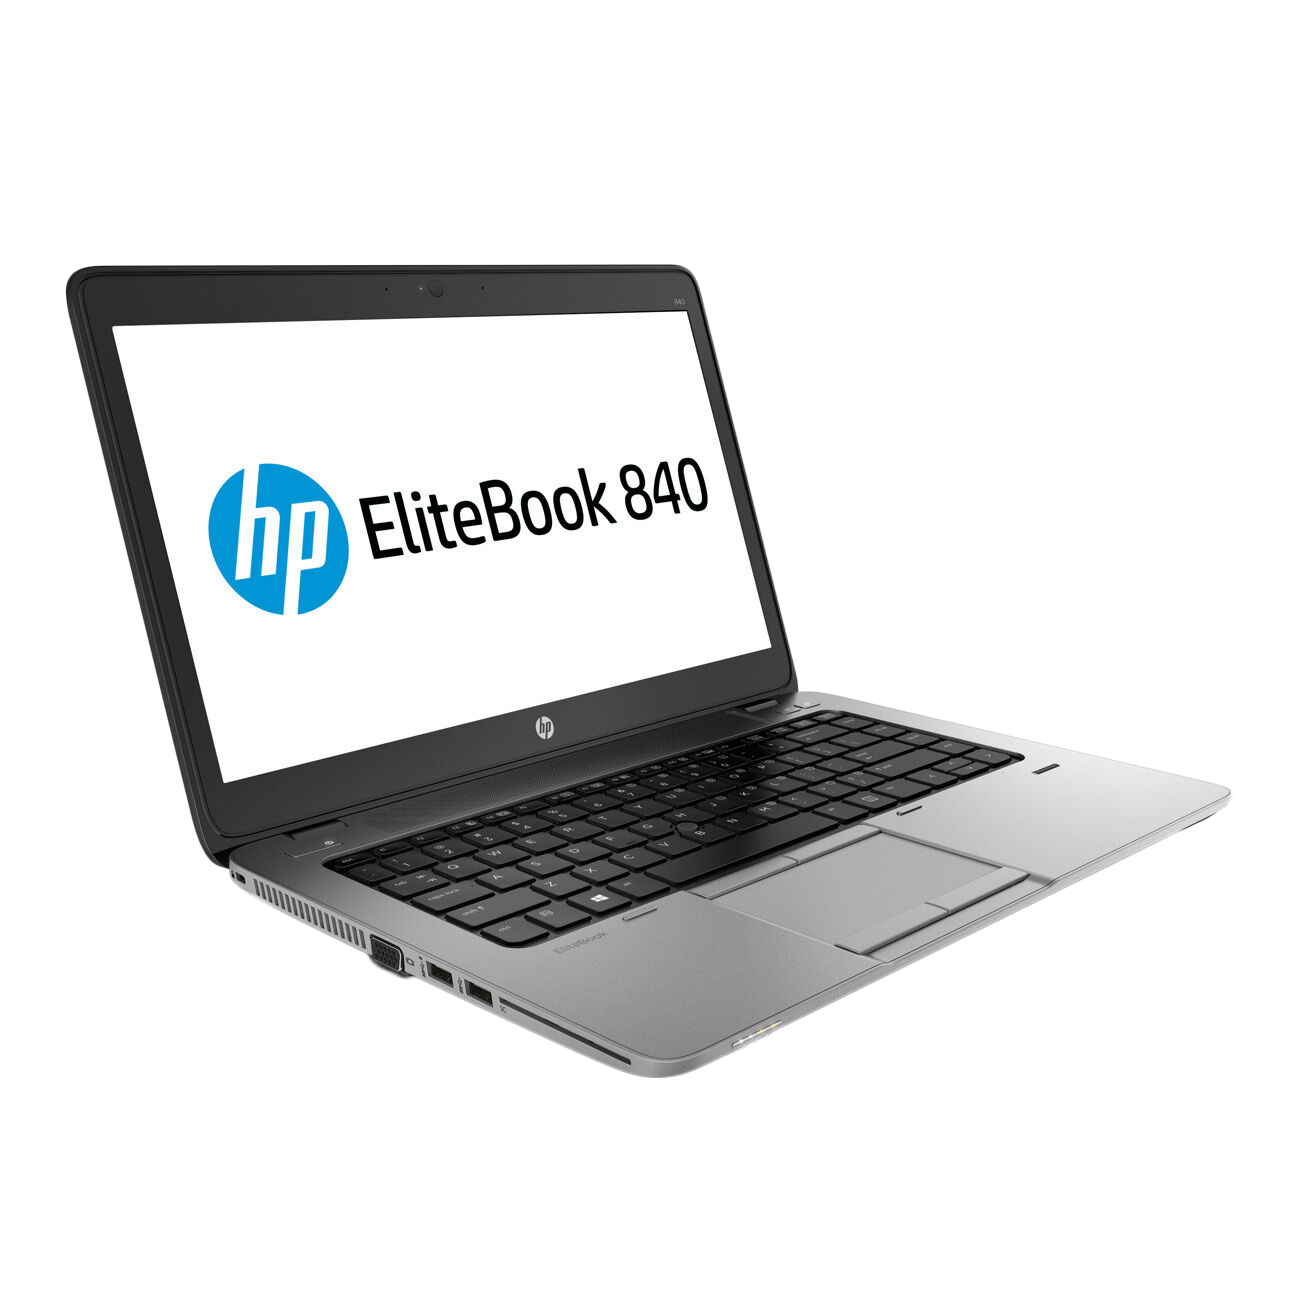 HP EliteBook 840 G1 Ultrabook Laptop i5-4300U 1.90GHz 4GB RAM 250GB HDD (Customisable)